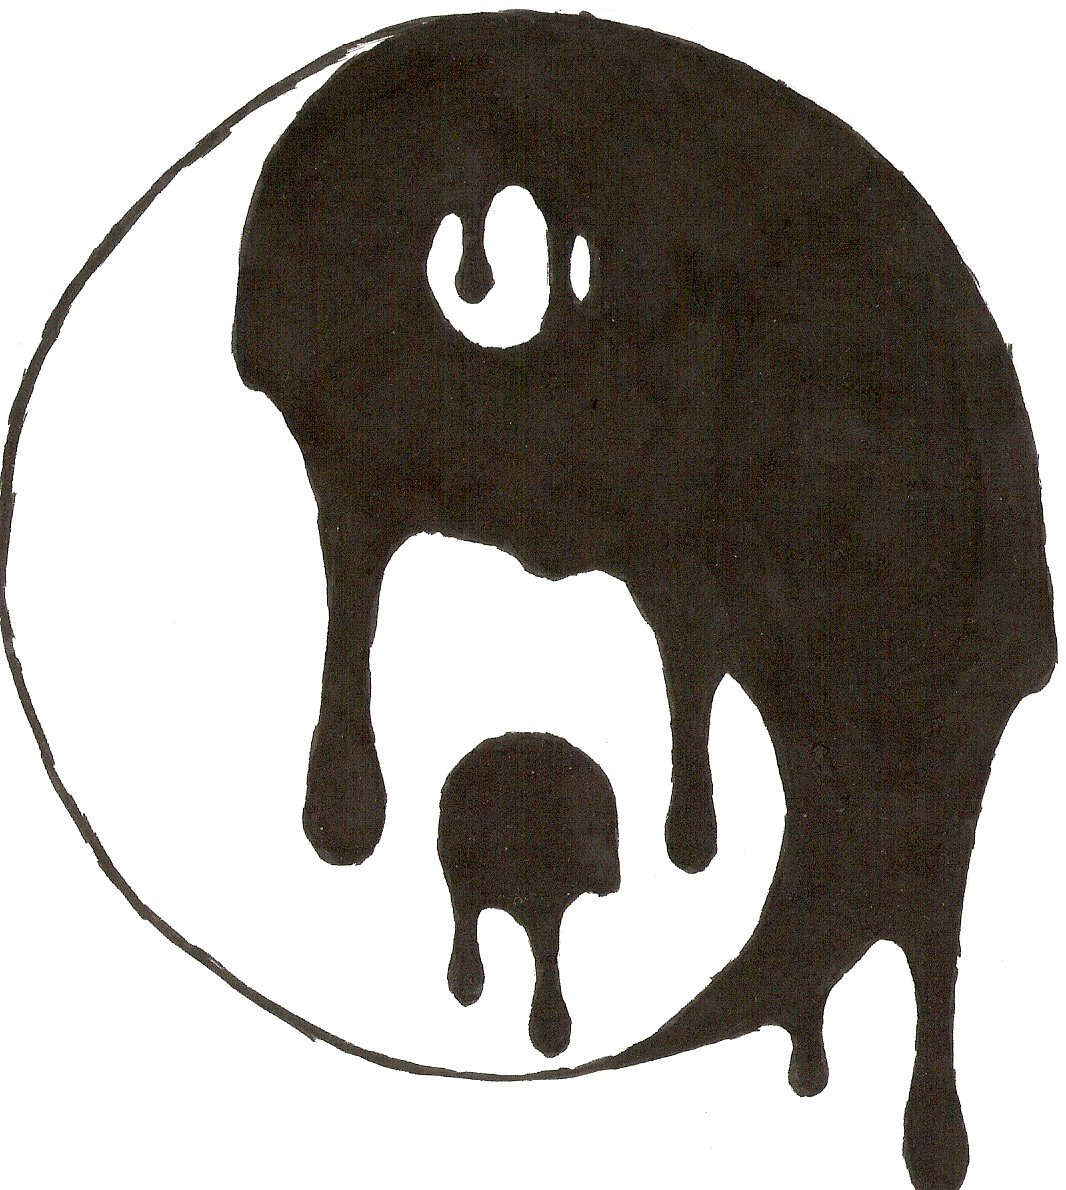 Yin yang design clipart best for Cool but simple things to draw